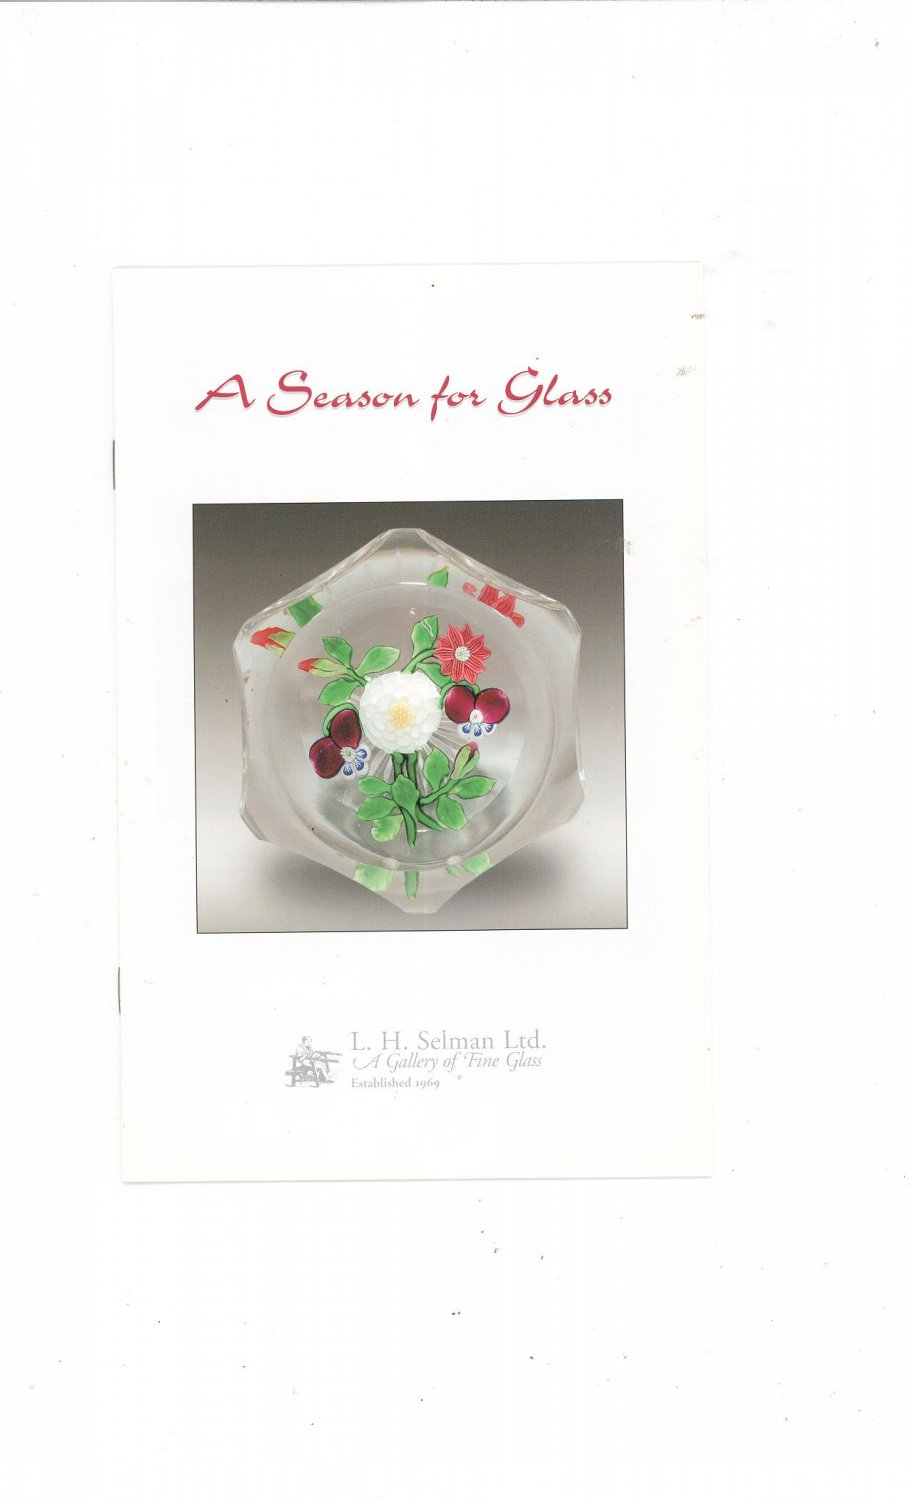 A Season For Glass Catalog / Brochure by L. H. Selman Ltd. Paperweights